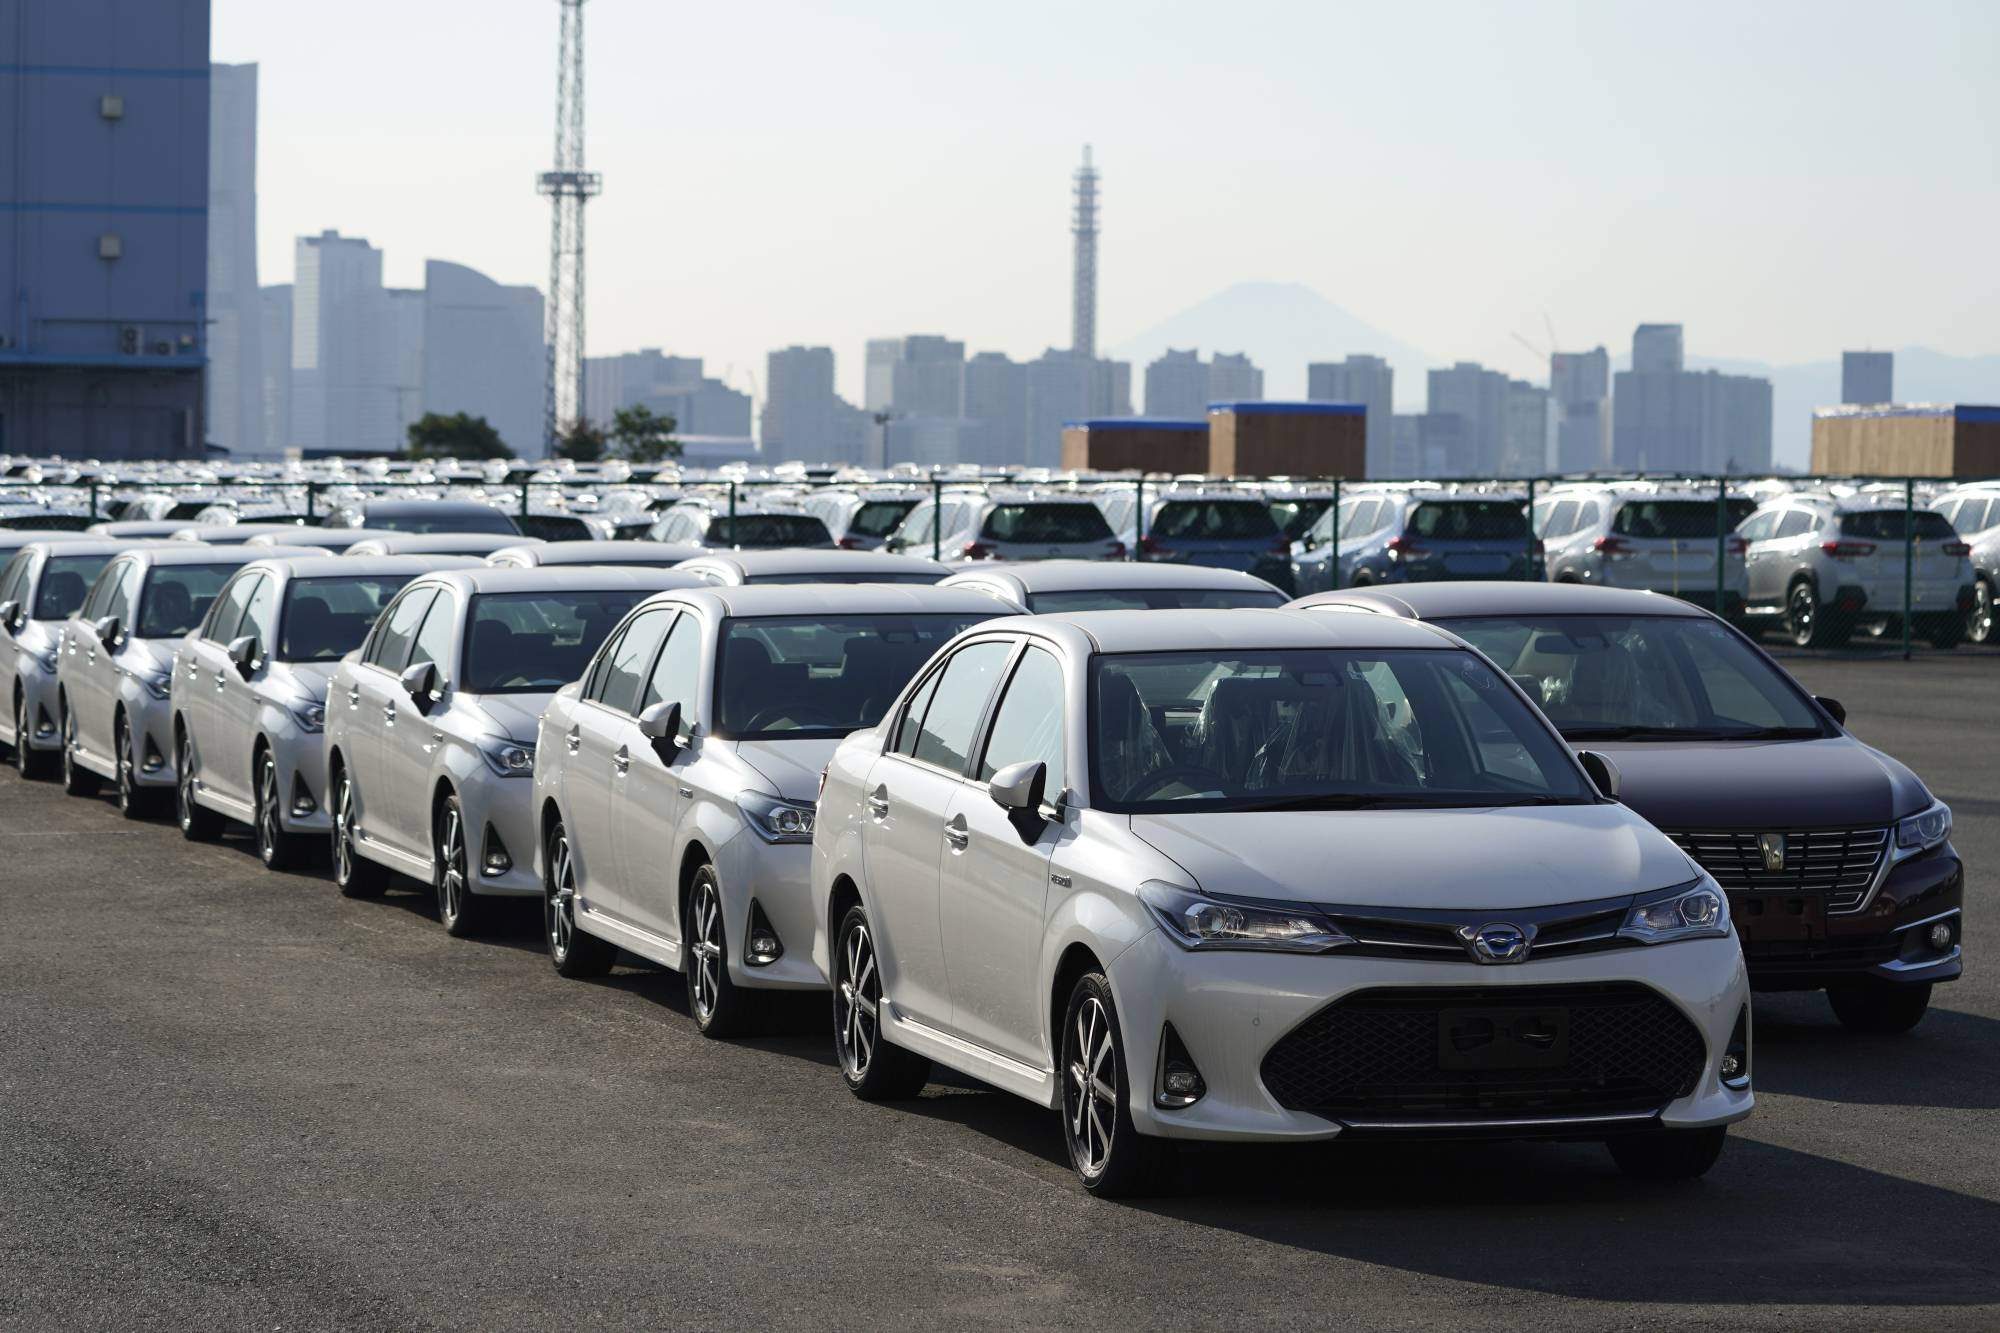 Toyota Motor Corp. vehicles bound for shipment are lined up at a port in Yokohama on Saturday. | BLOOMBERG